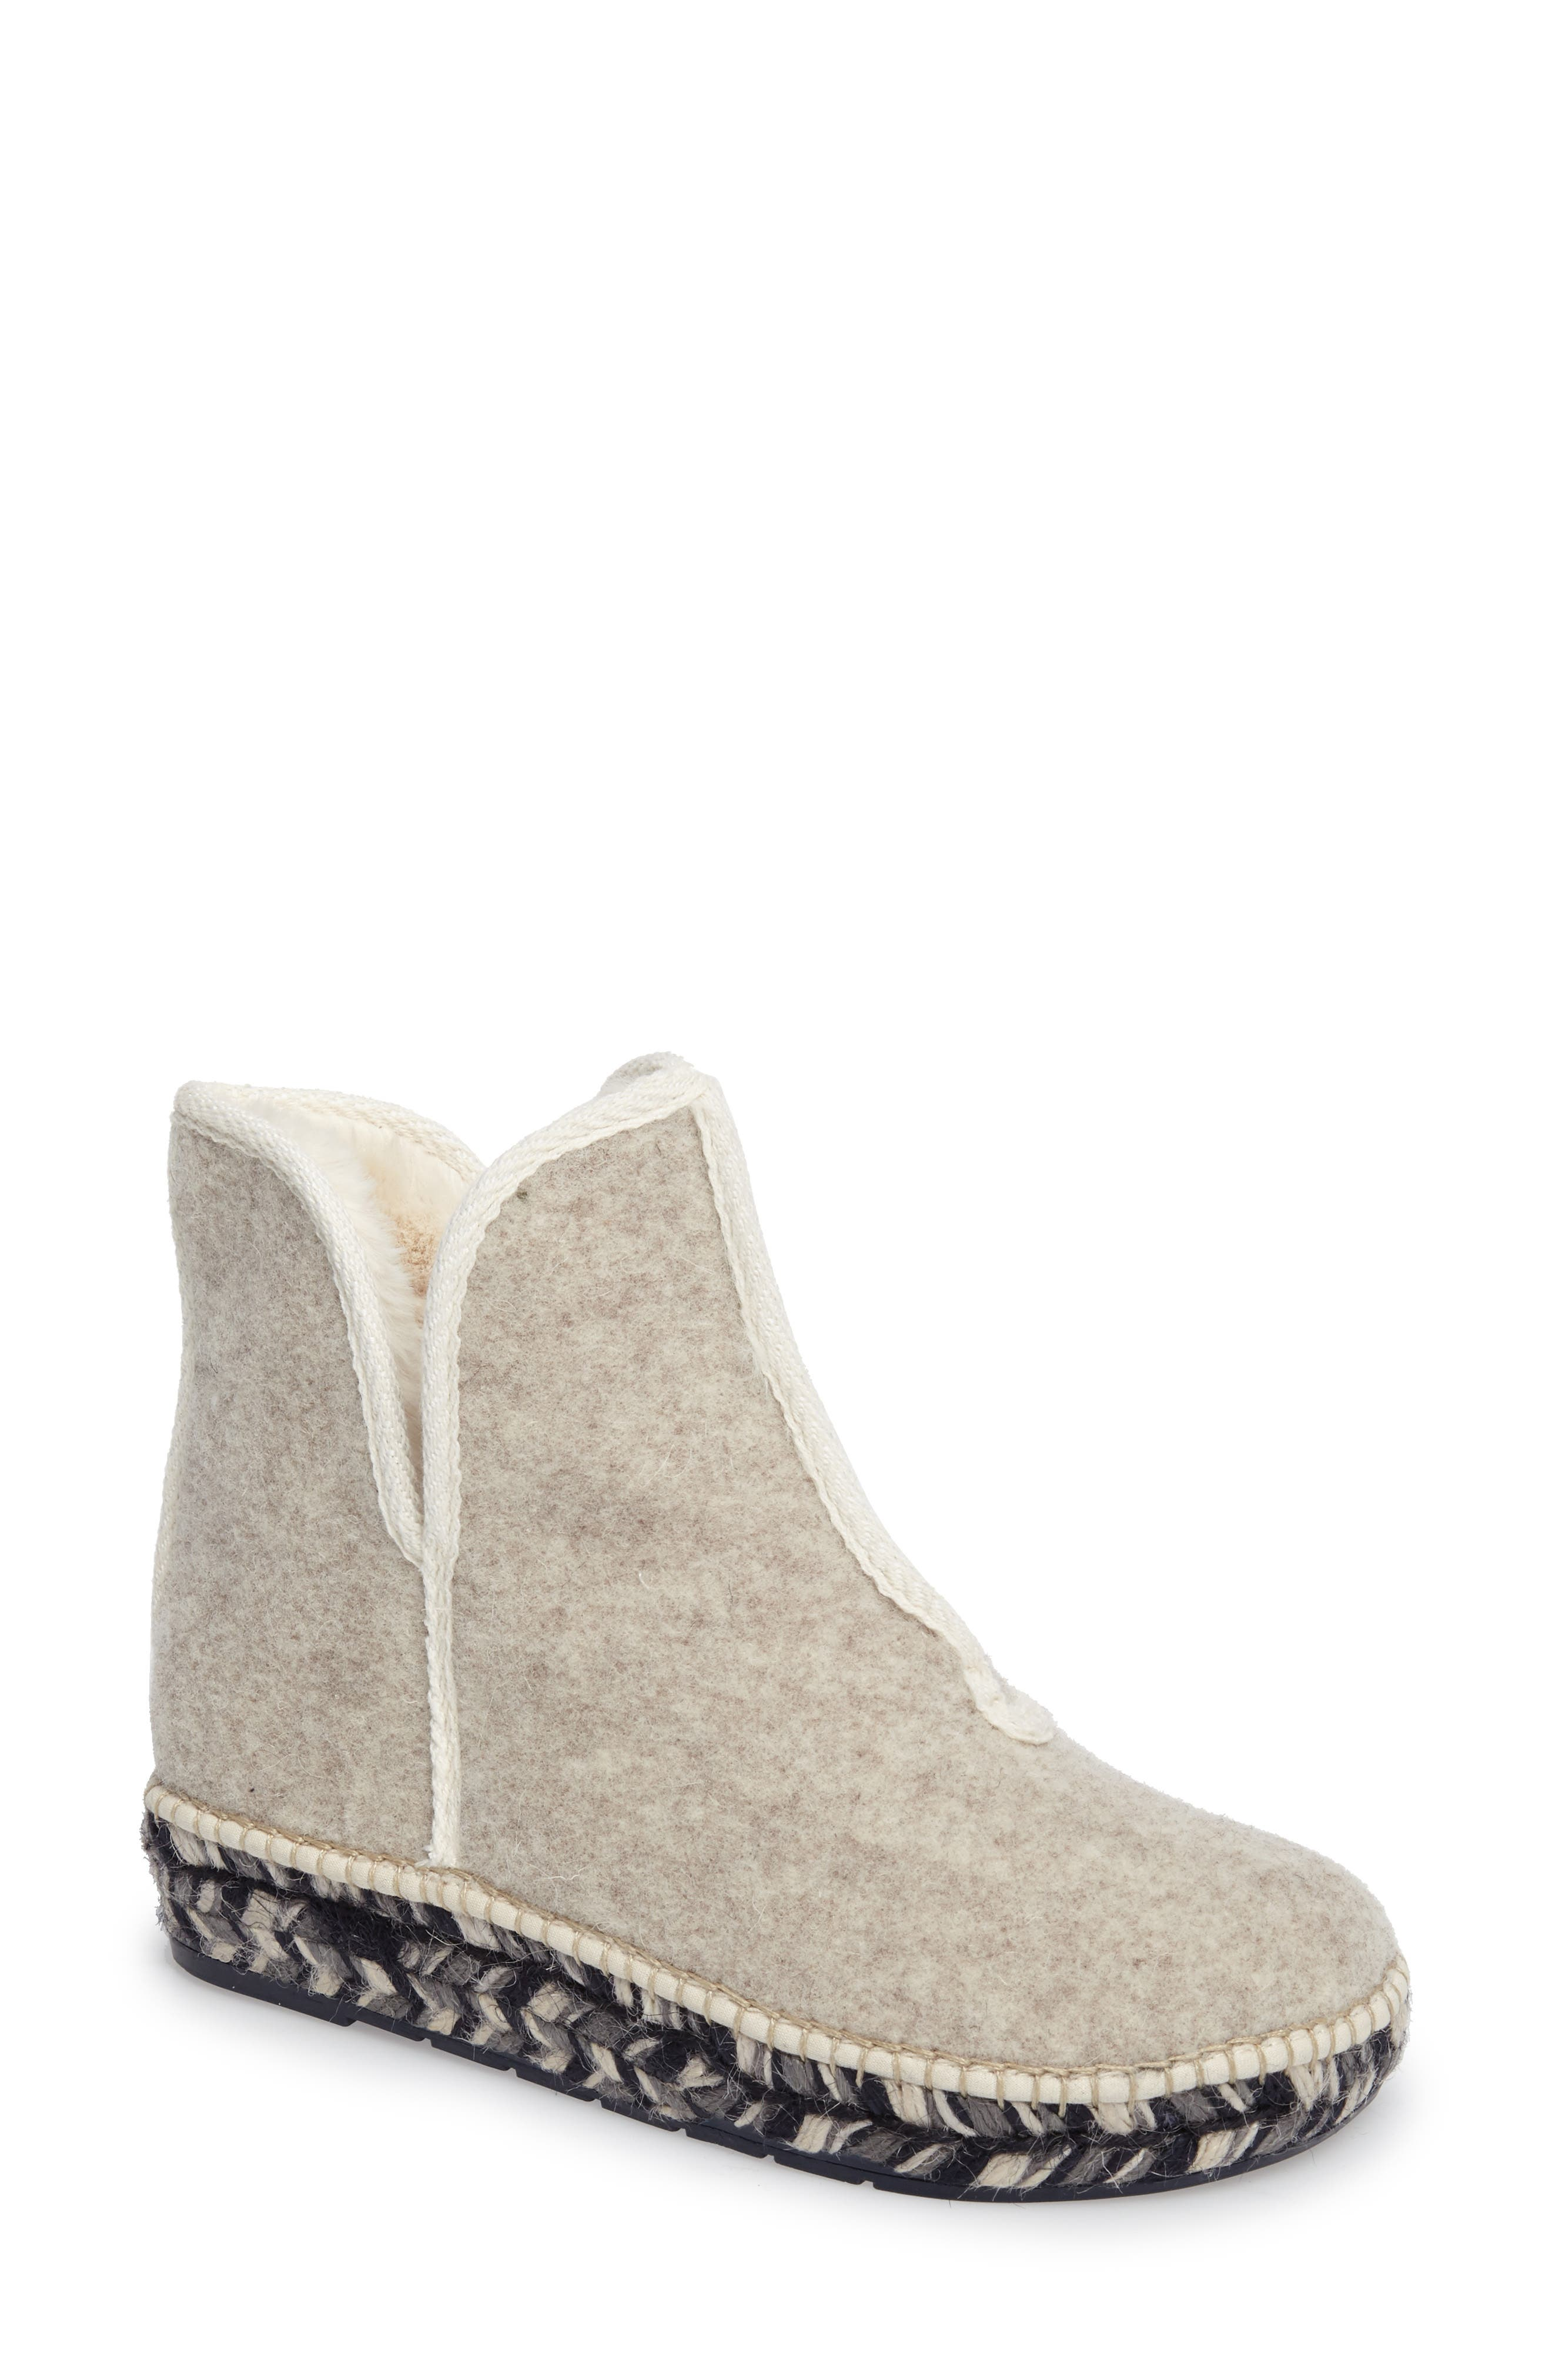 Espadrille Platform Bootie with Faux Fur Lining,                         Main,                         color, ECRU FELT